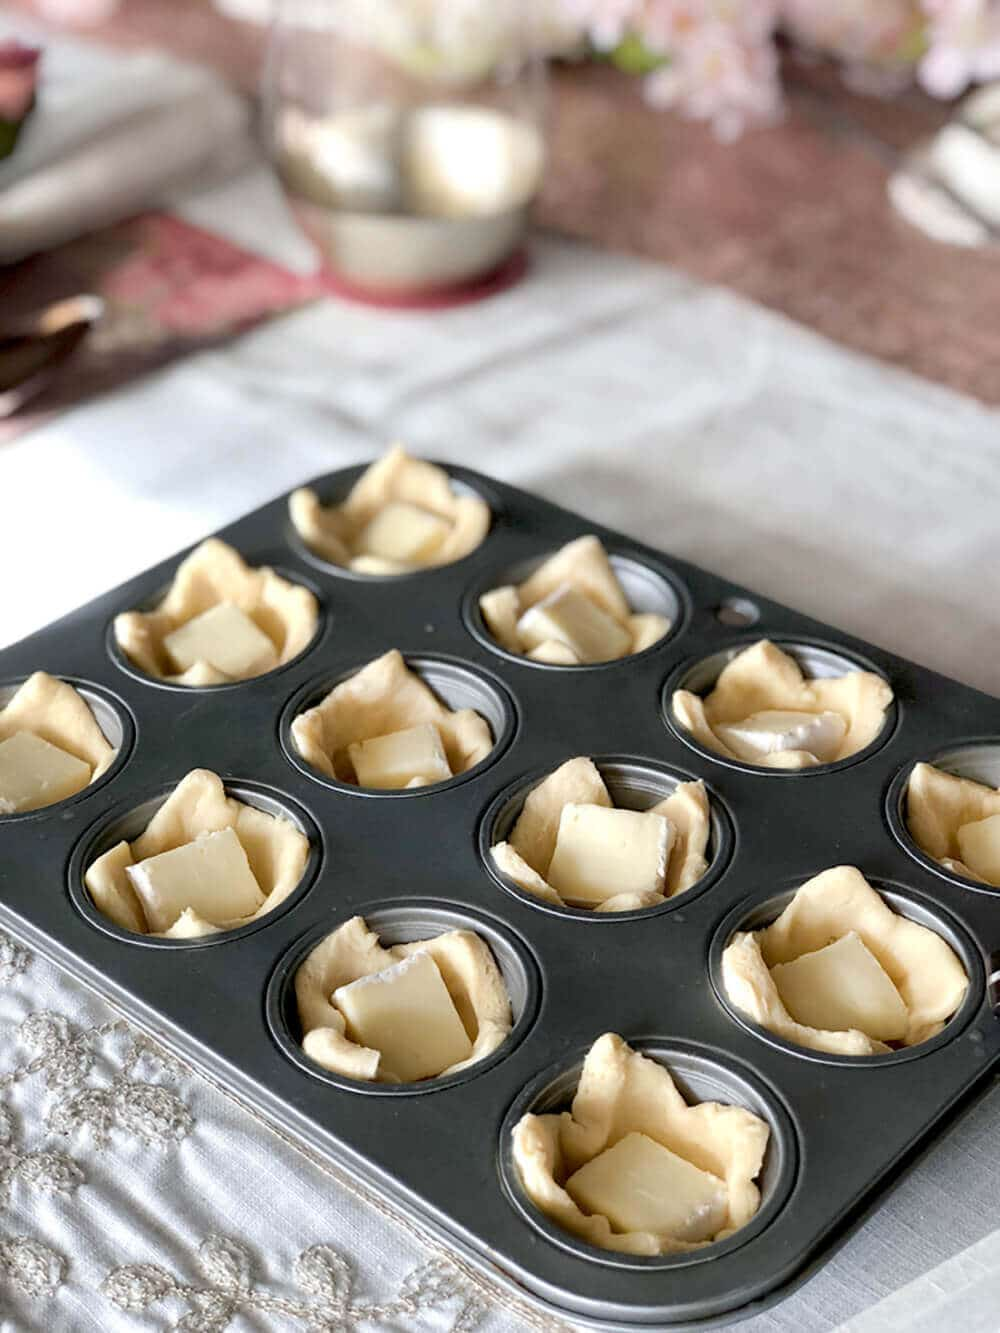 Cubed brie cheese in muffin tins